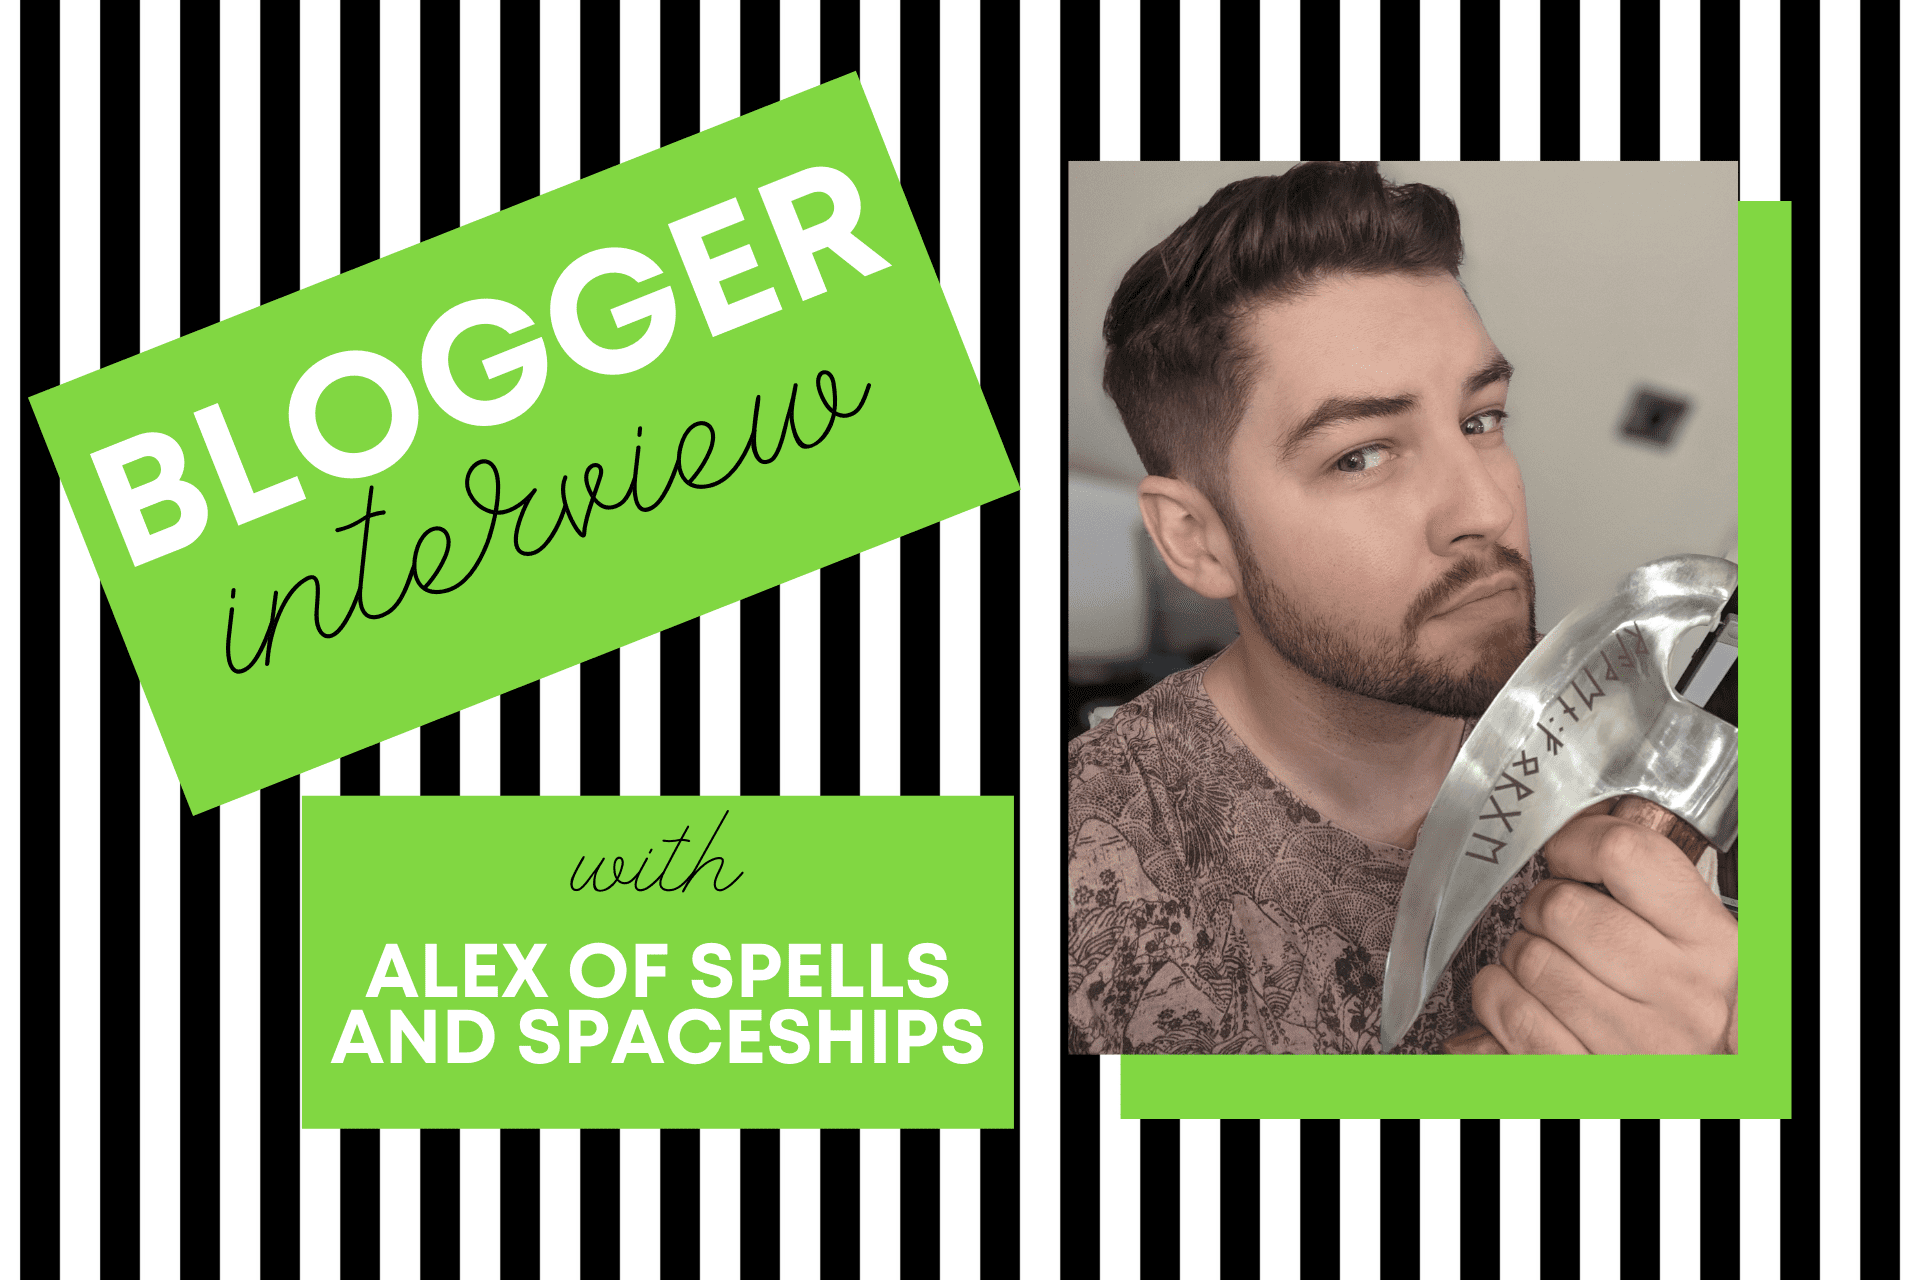 Blogger interview with Alex of Spells and Spaceships